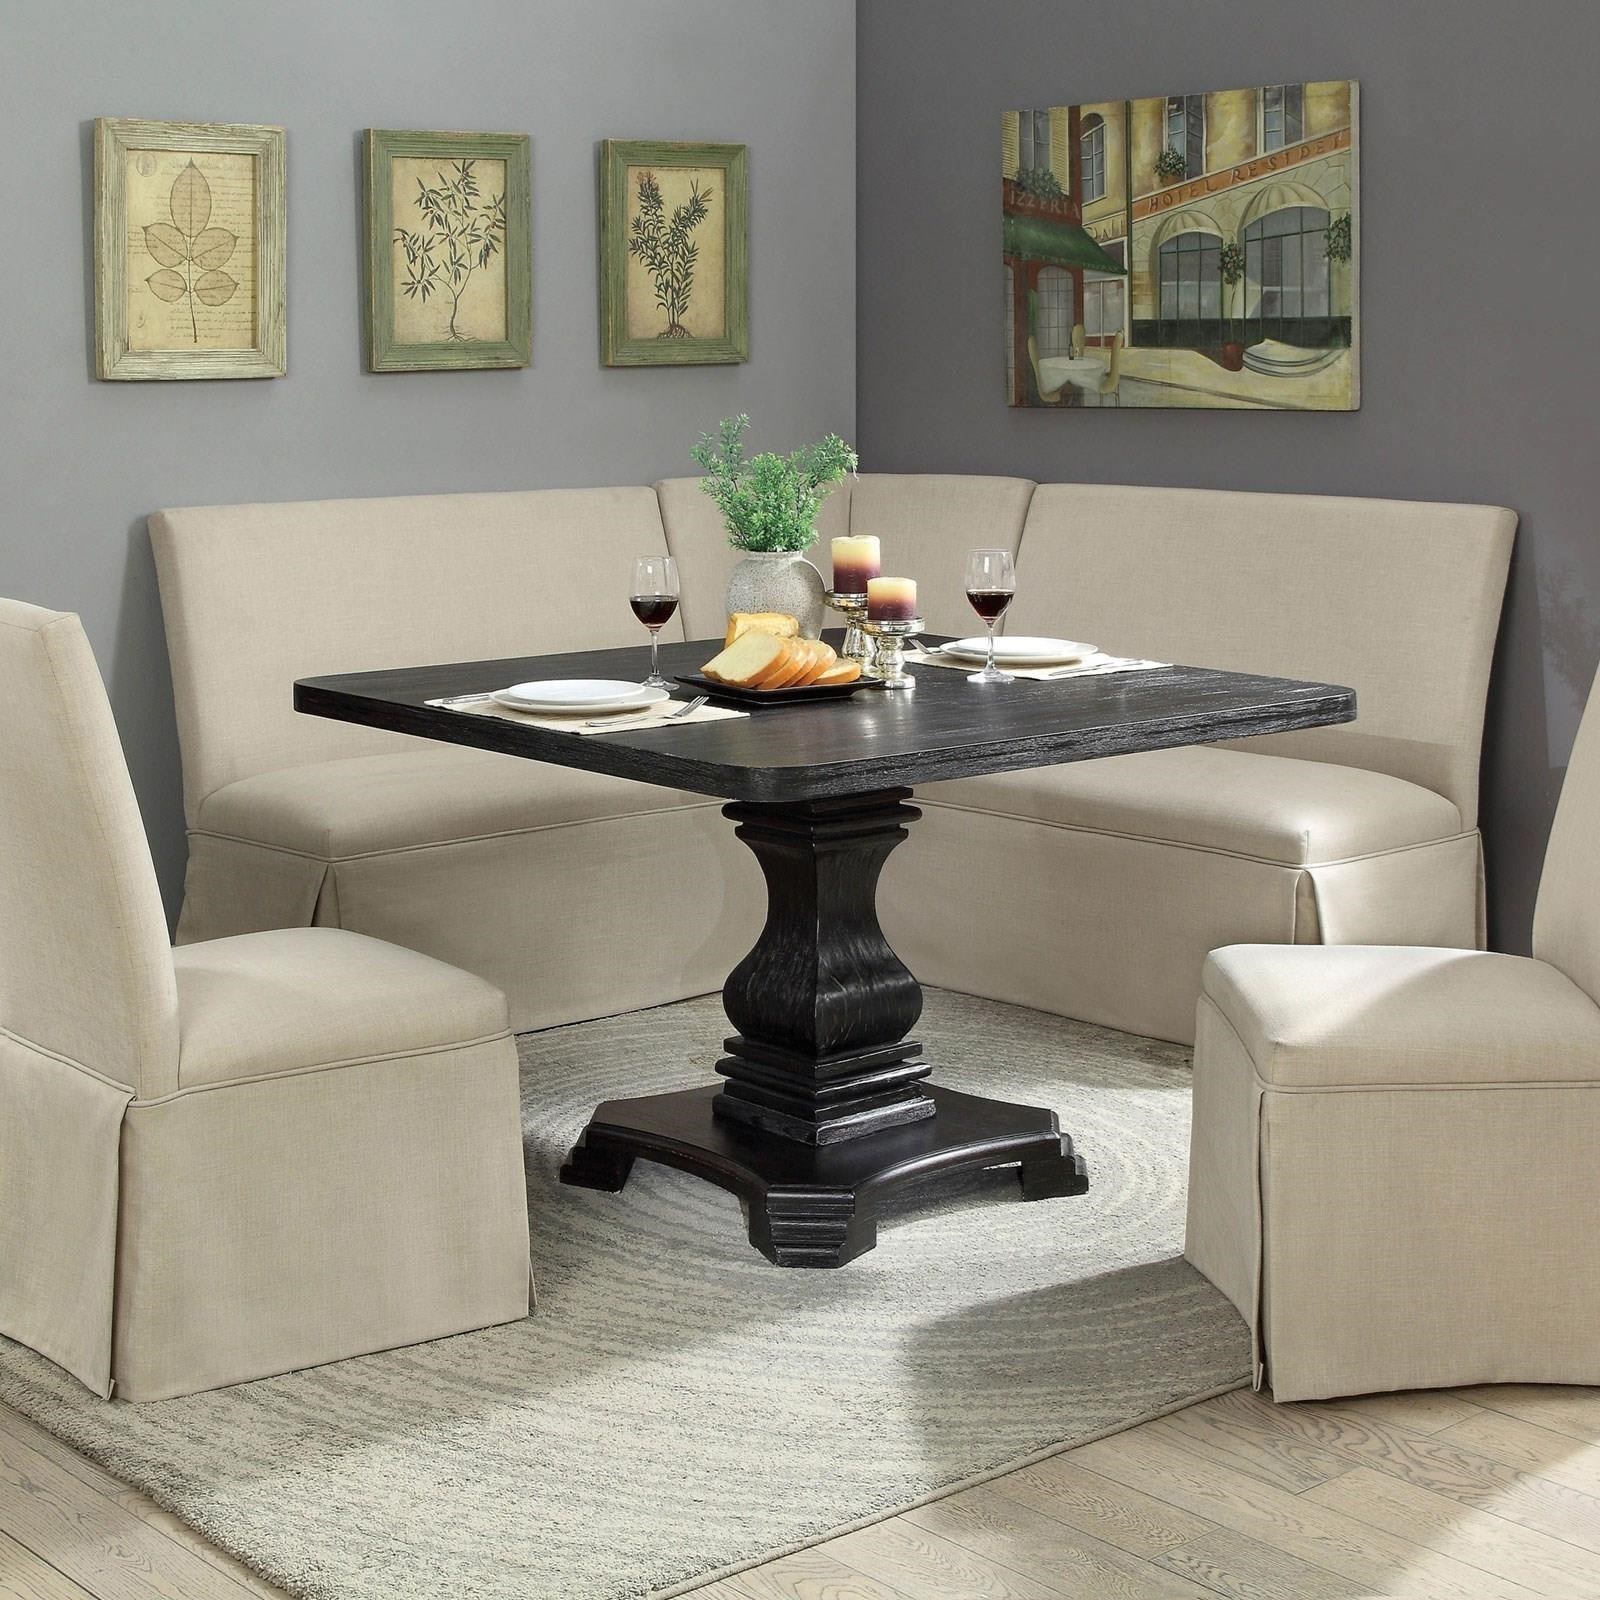 Breakfast Room Tables Nerissa Vintage Style Square Dining Table By Furniture Of America At Rooms For Less